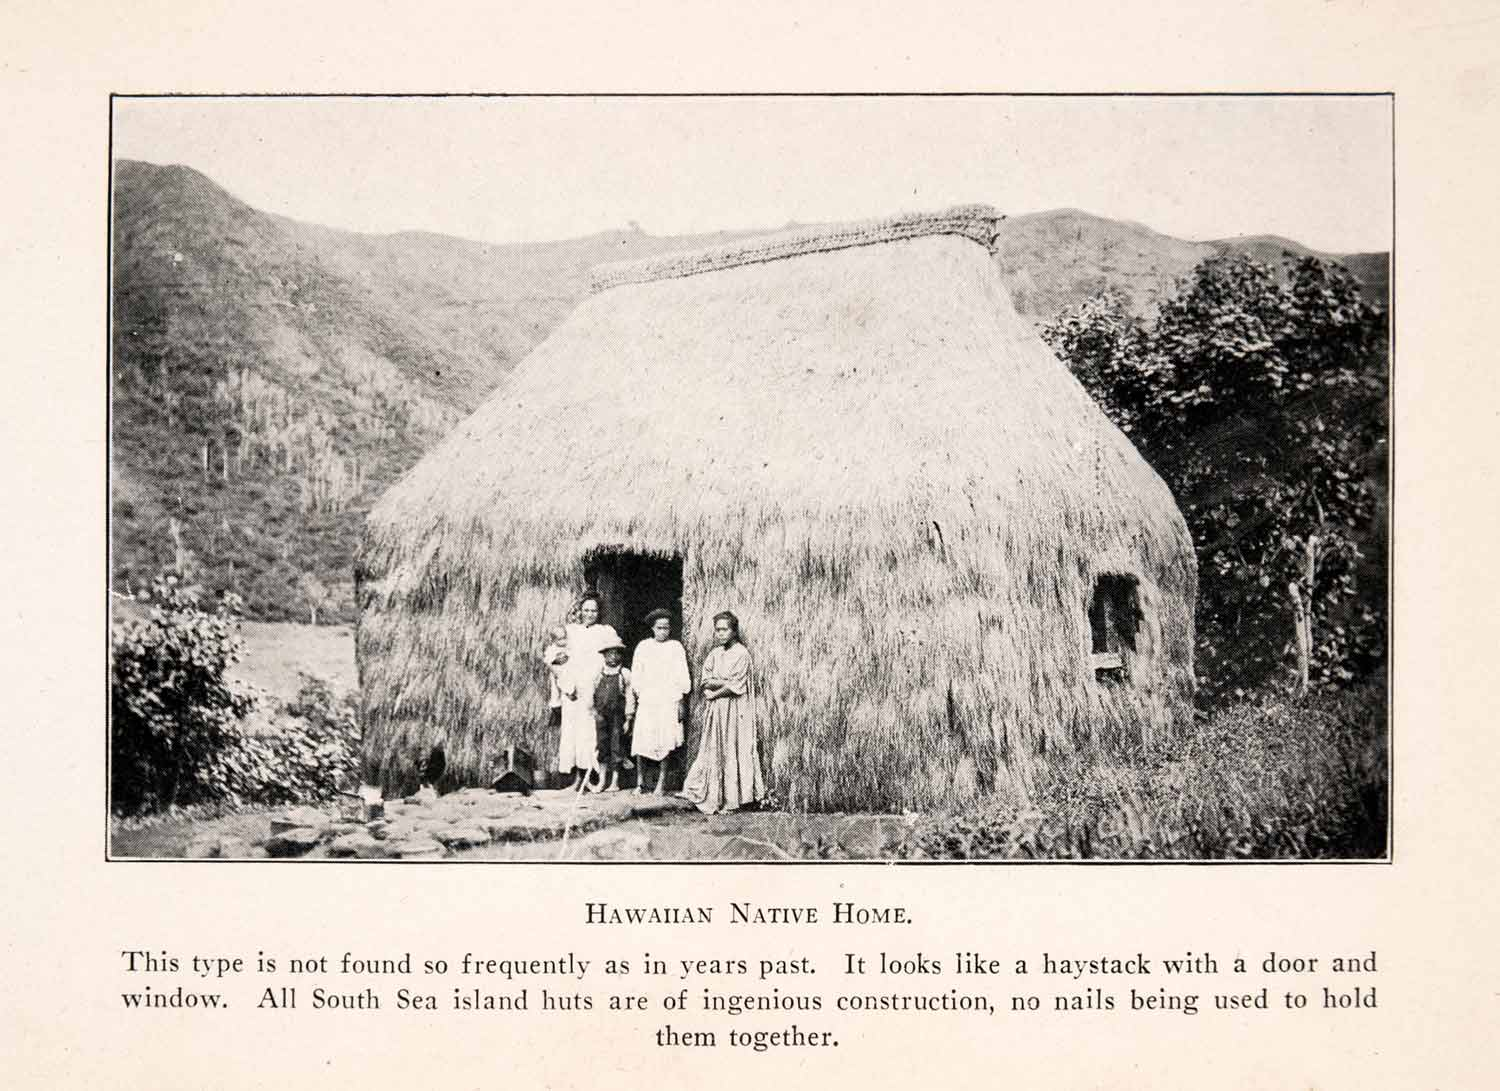 1926 Halftone Print Hawaii Native Home Hay South Sea Grass Hut Island XGLA4